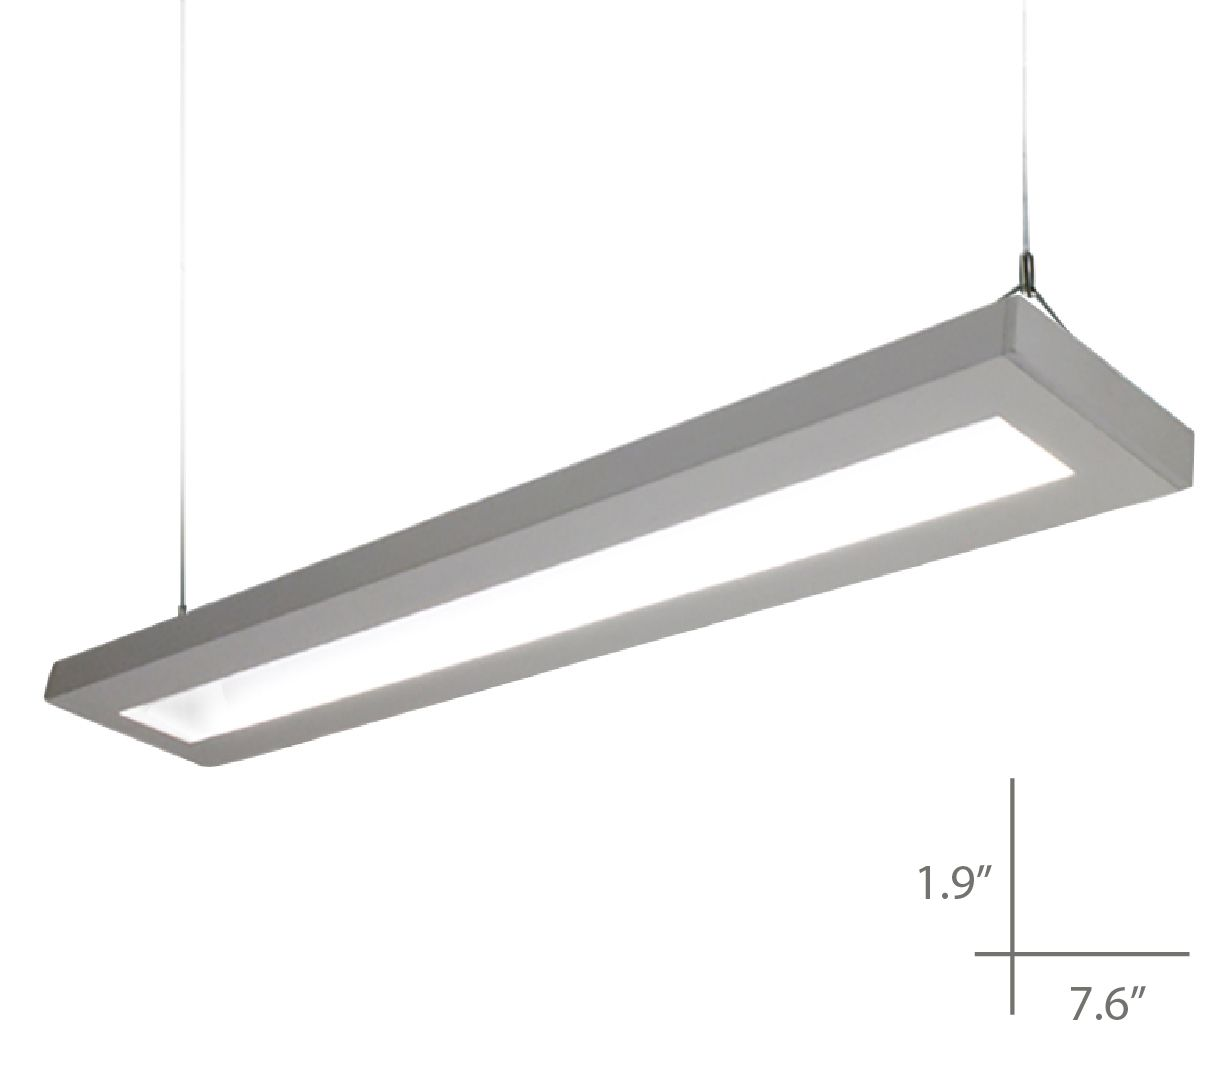 Alcon Lighting 12113 8 Nlp Architectural Led Foot Linear Suspended Pendant Mount Direct Indirect Light Fixture